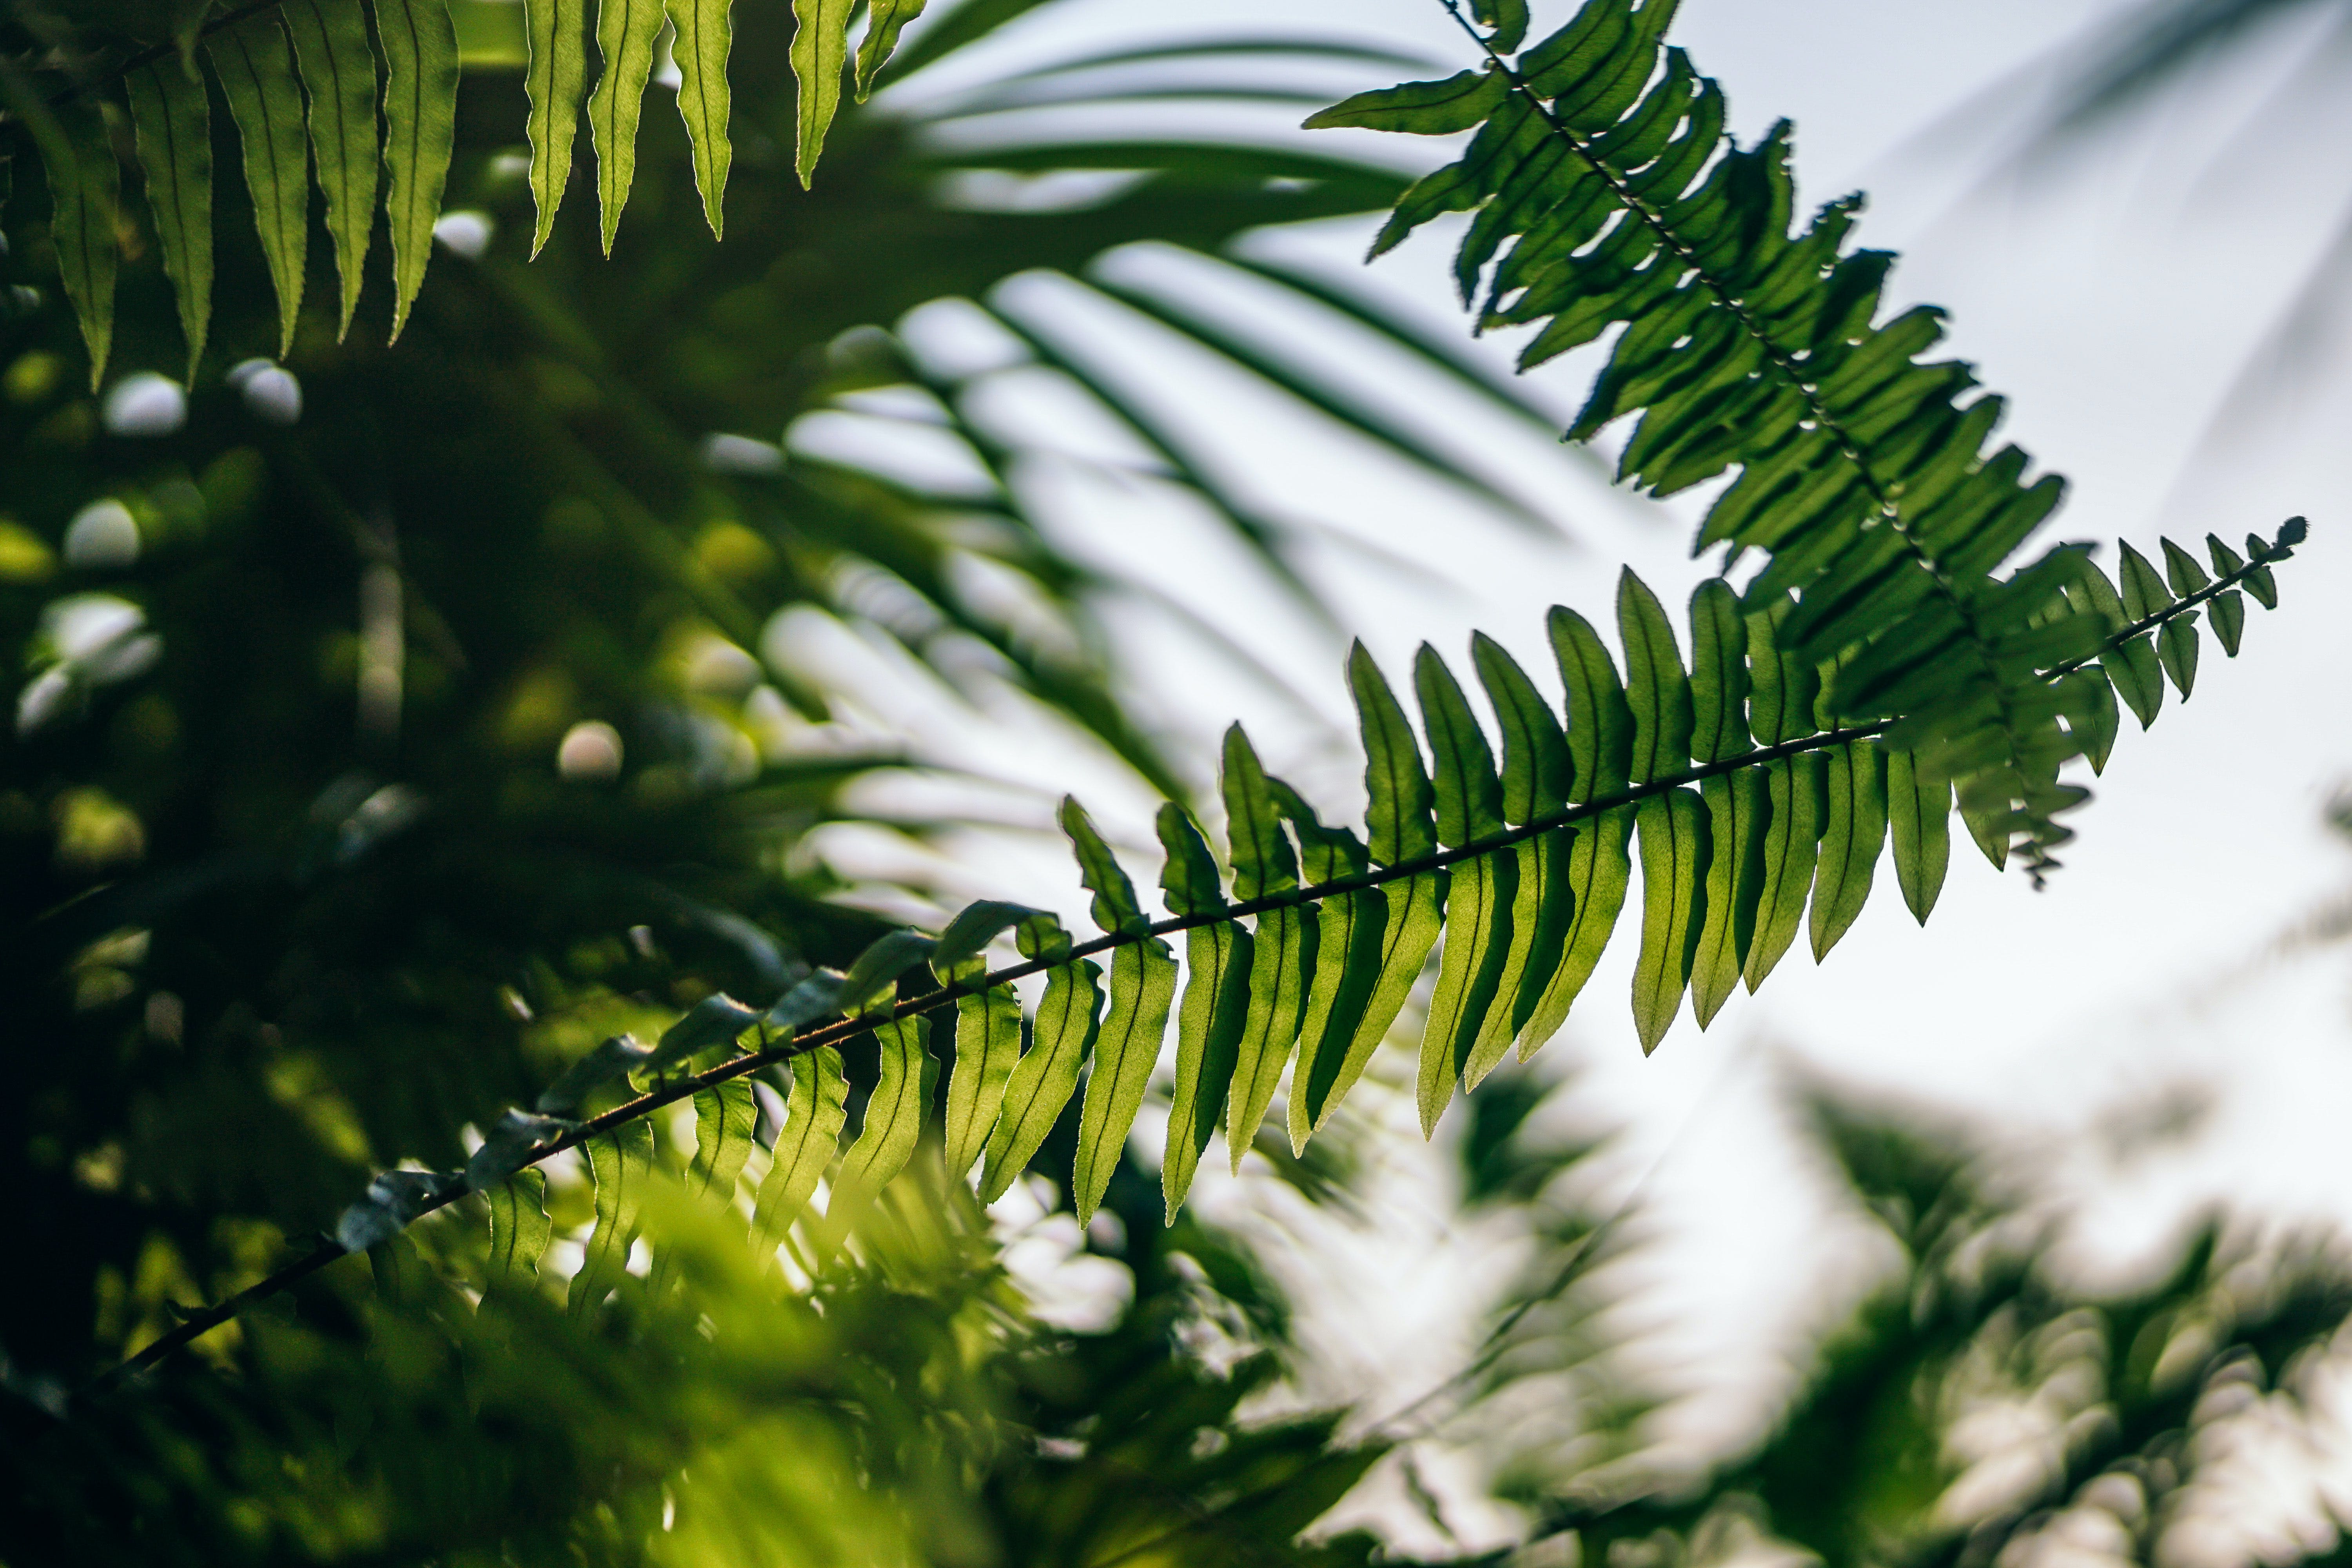 Free stock photo of plants, green, colors, outdoors